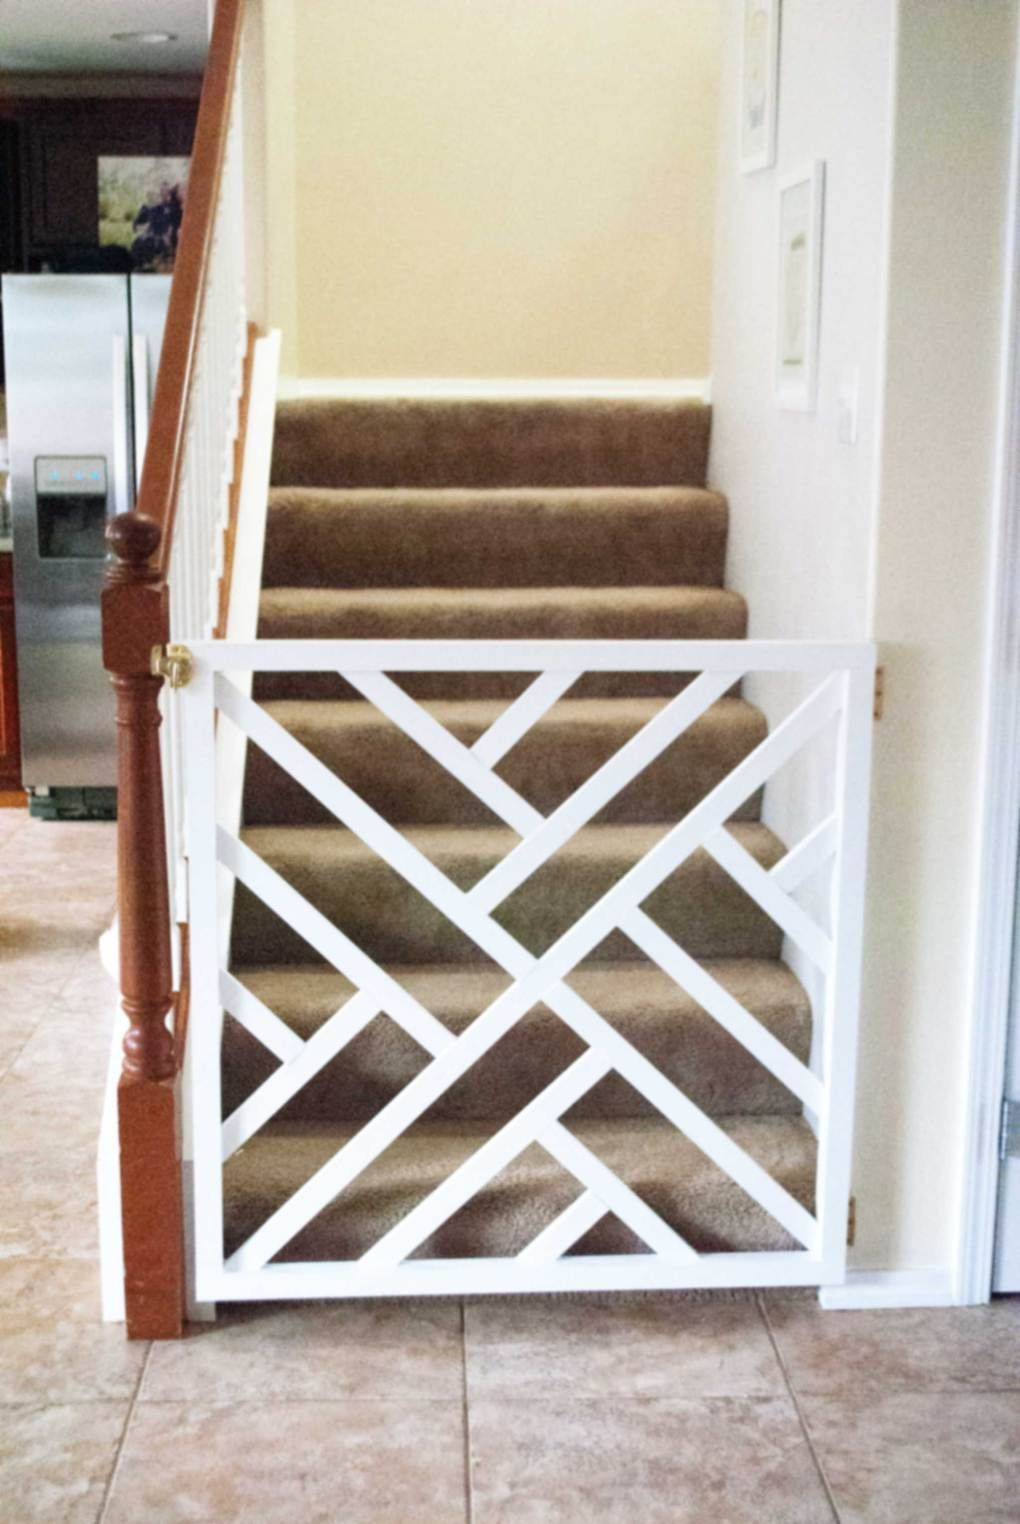 Diy baby gate pet gate baby gate for stairs baby gates